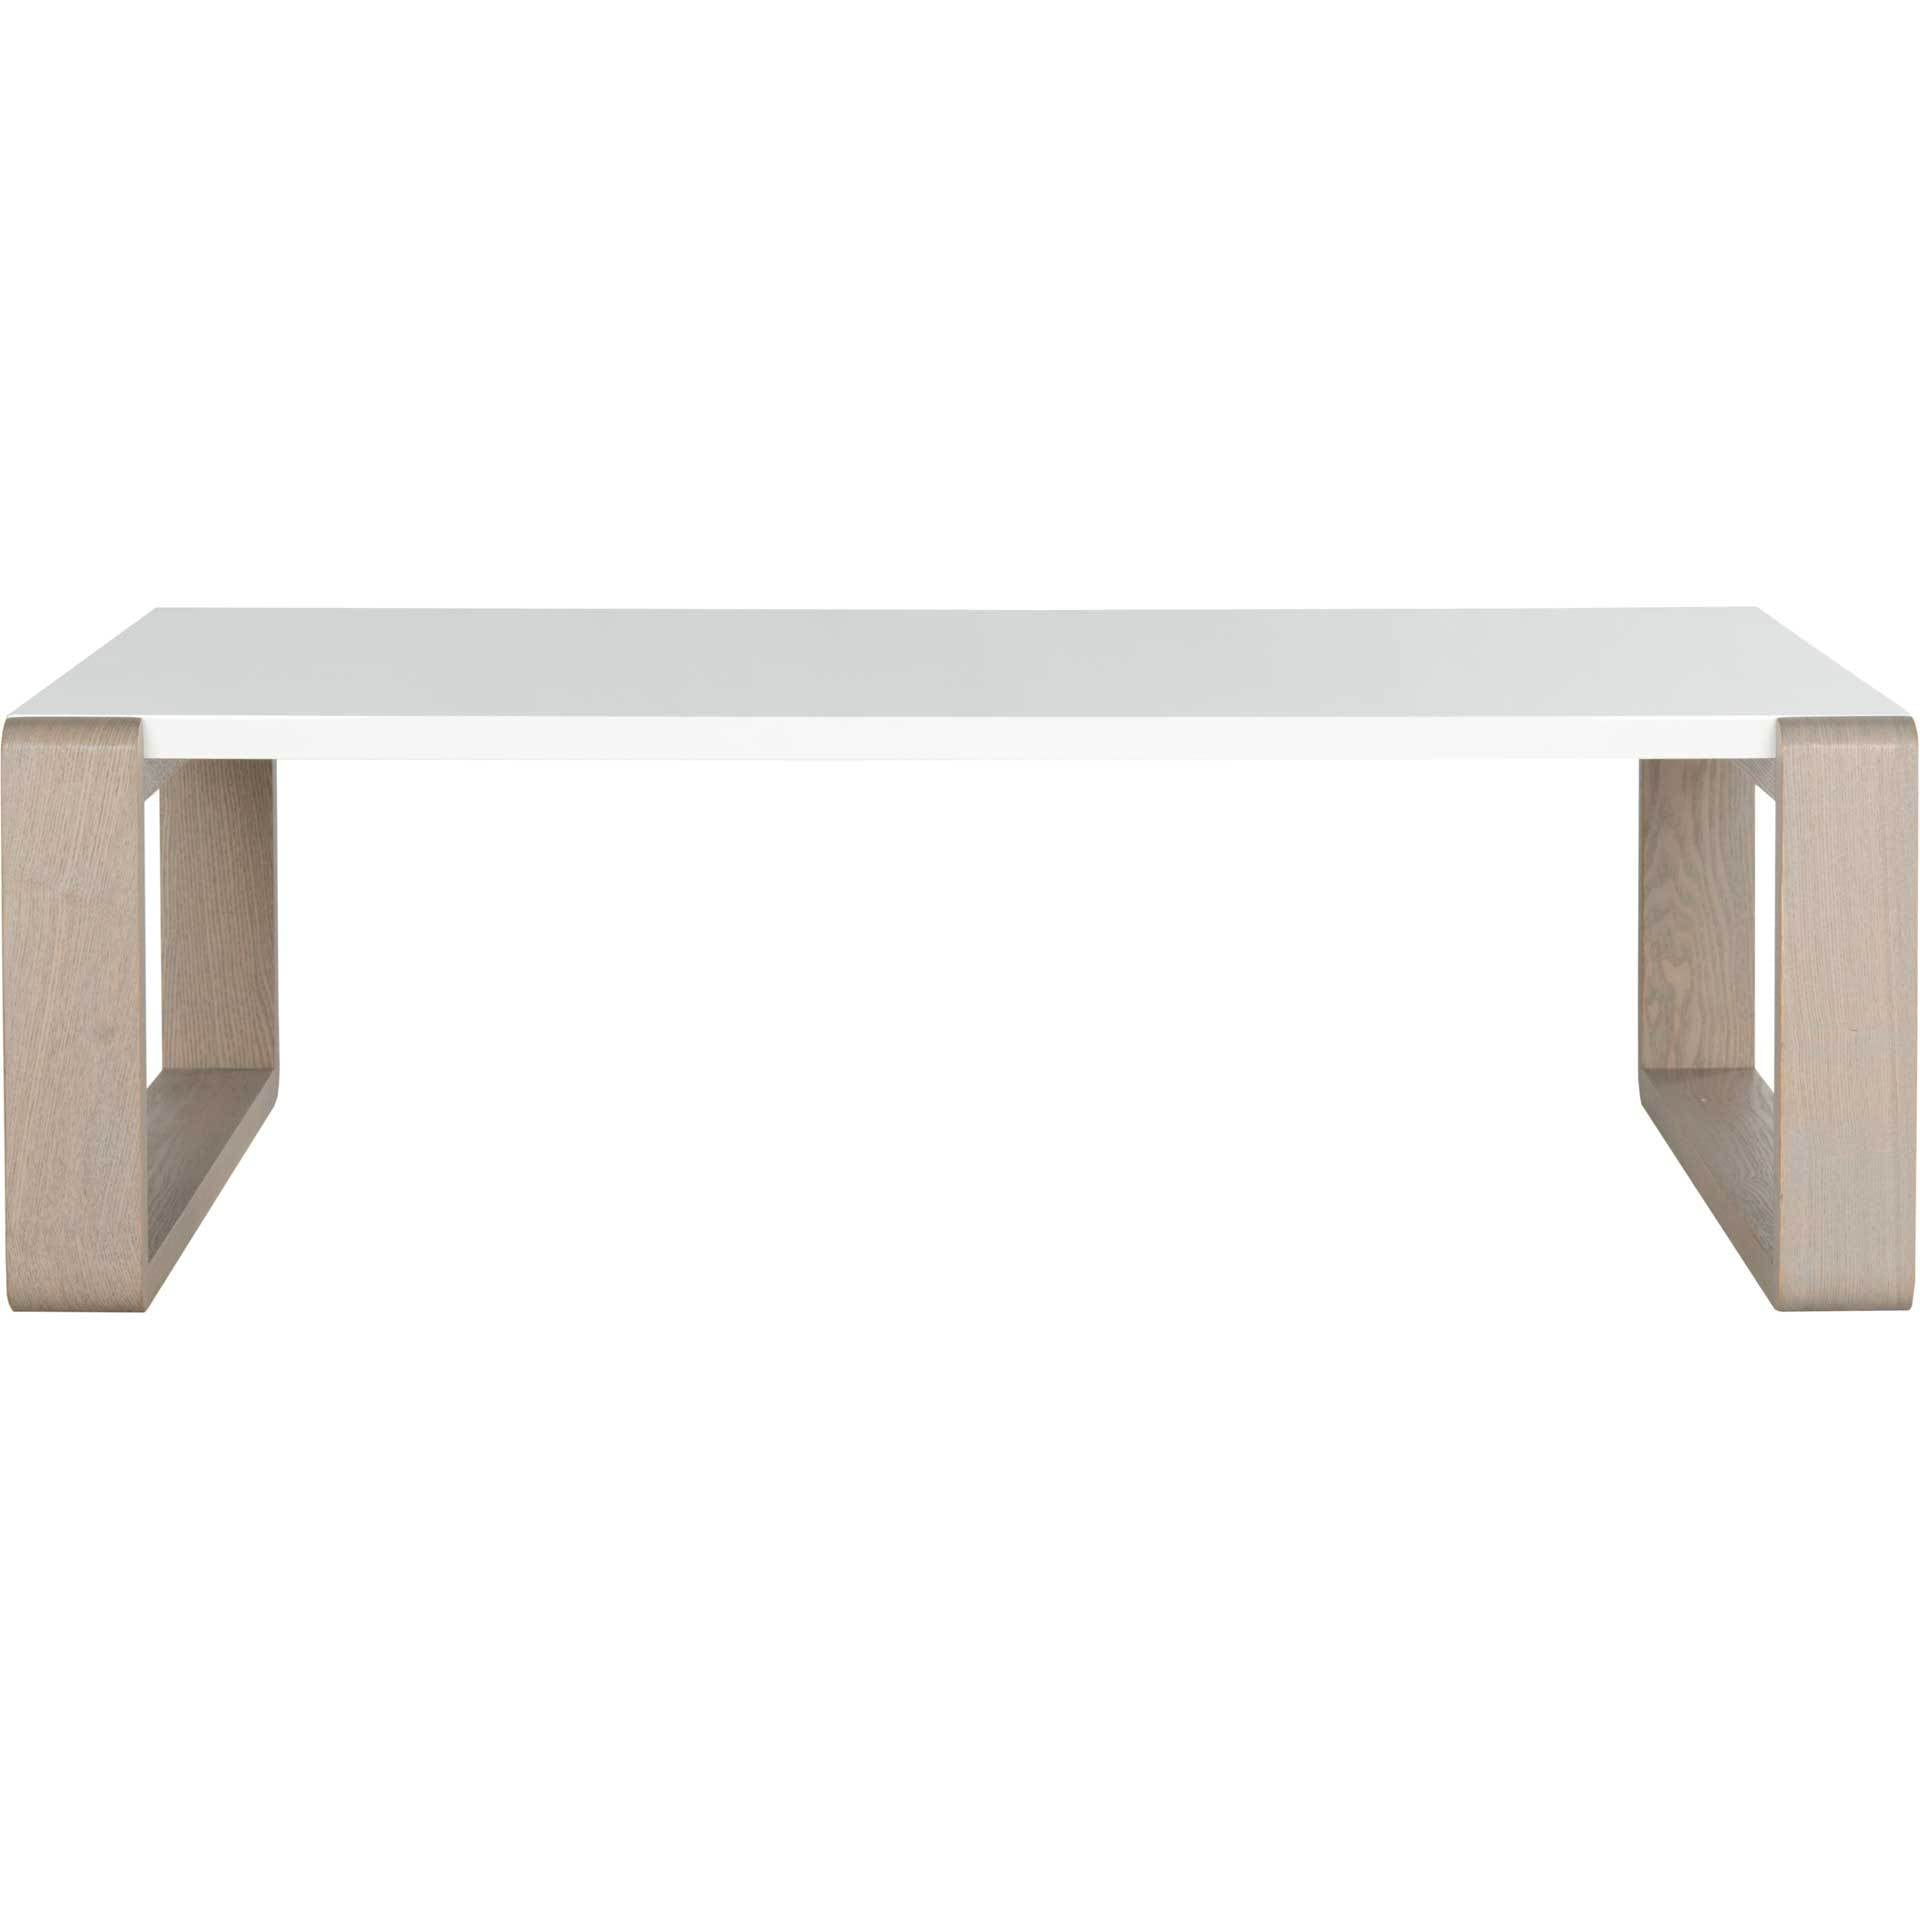 Balin Lacquer Coffee Table White/Gray